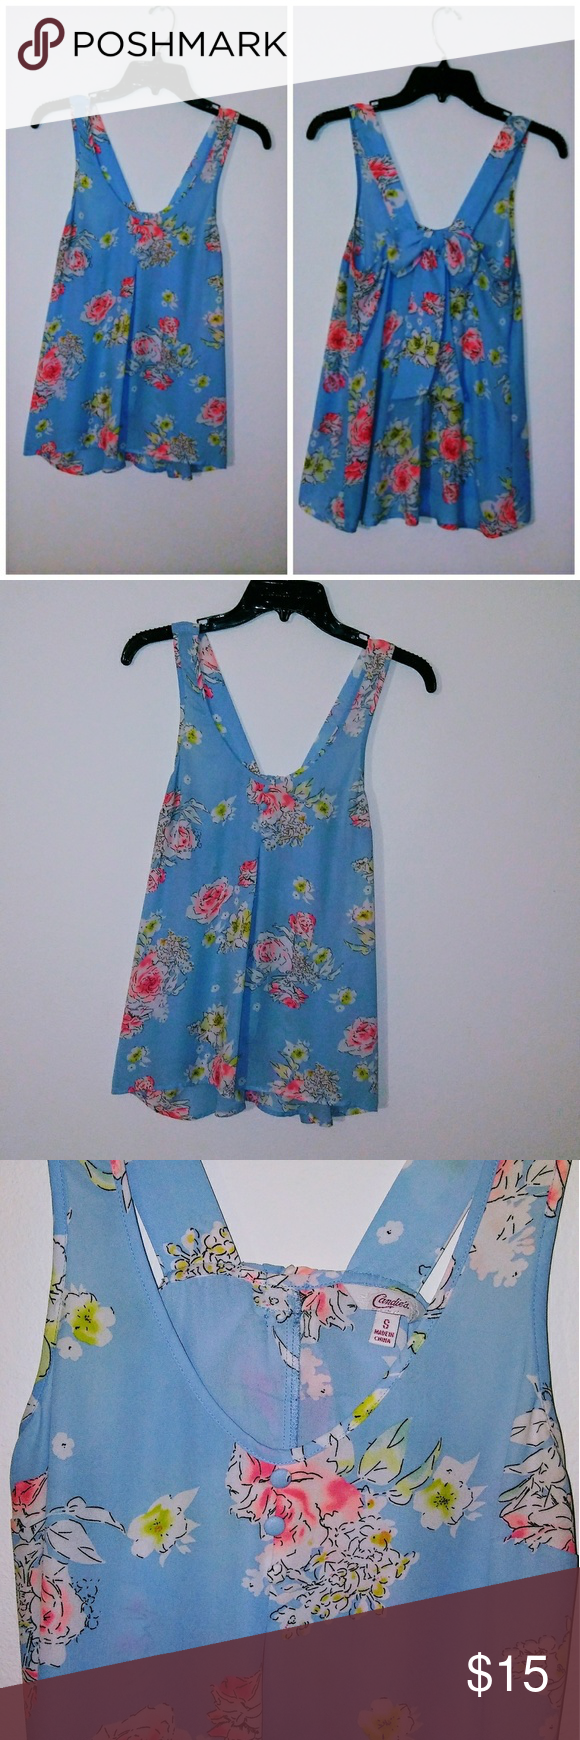 Candie's Floral Blue Shirt Floral shirt is gently used and like new. Worn a few times. Has button detail on the front and a cute bow on the back of the shirt. Great styled with jeans and a jacket if desired! Candie's Tops